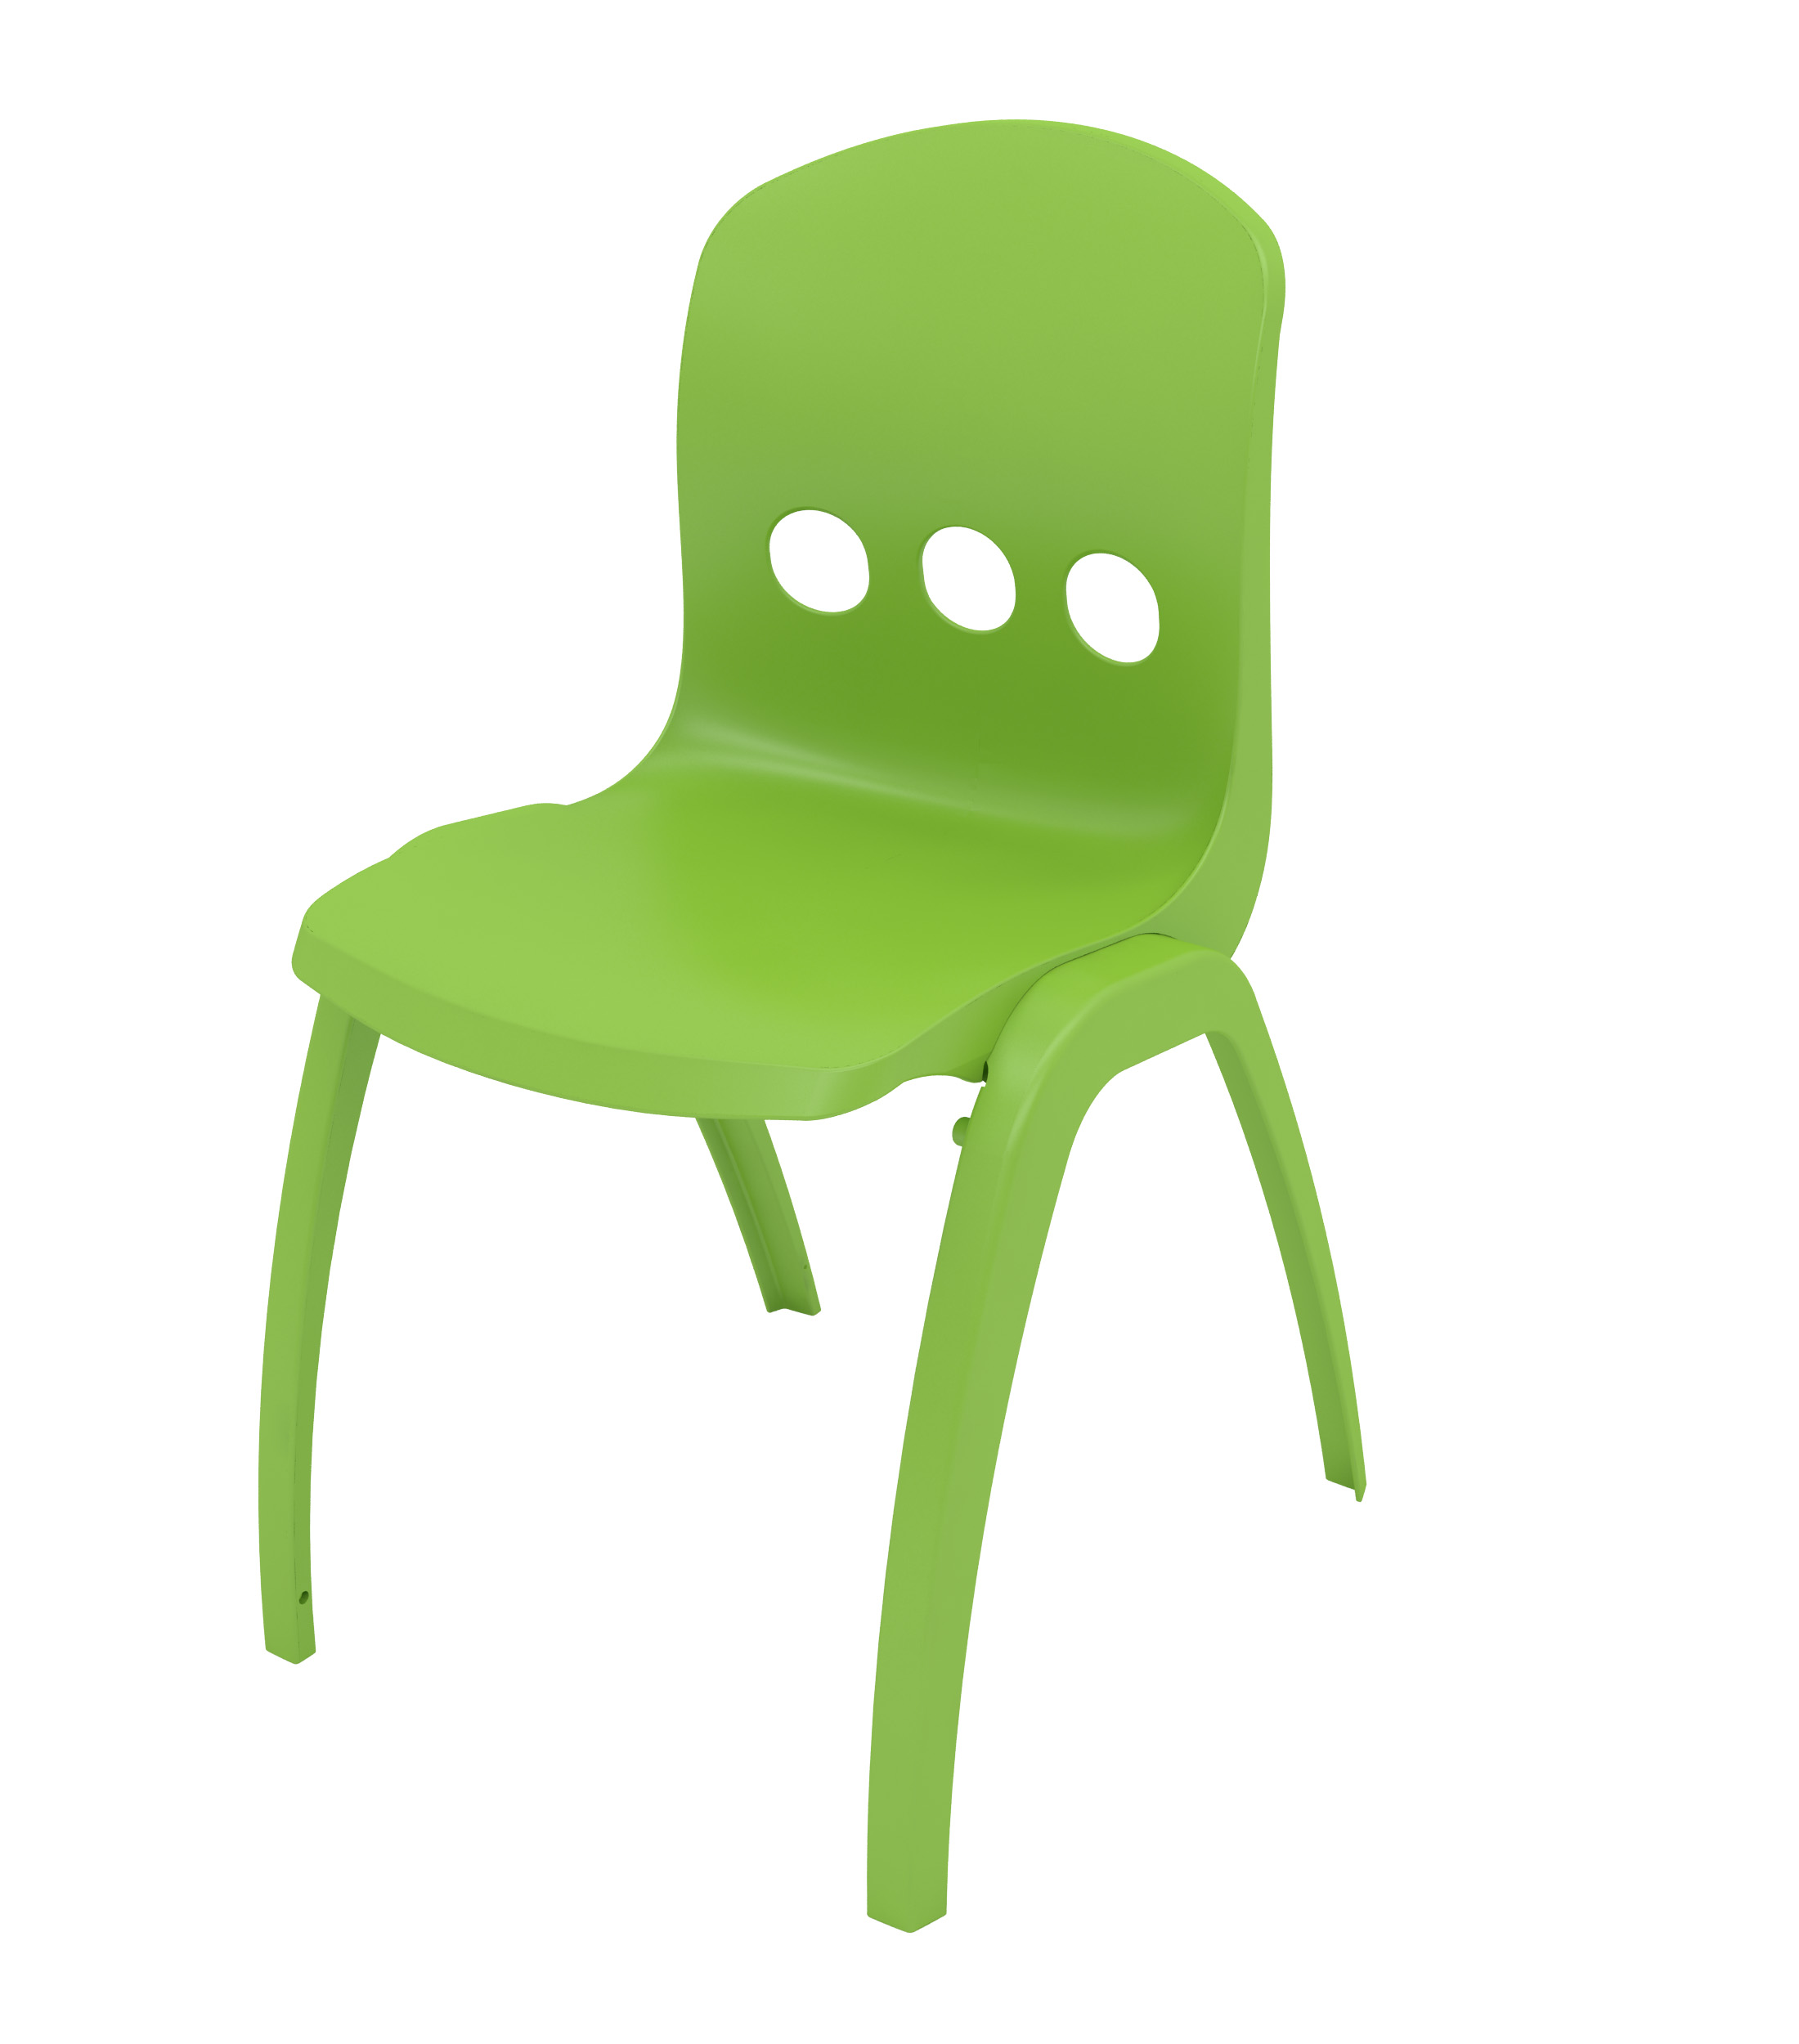 max chair contract furniture manufacturers